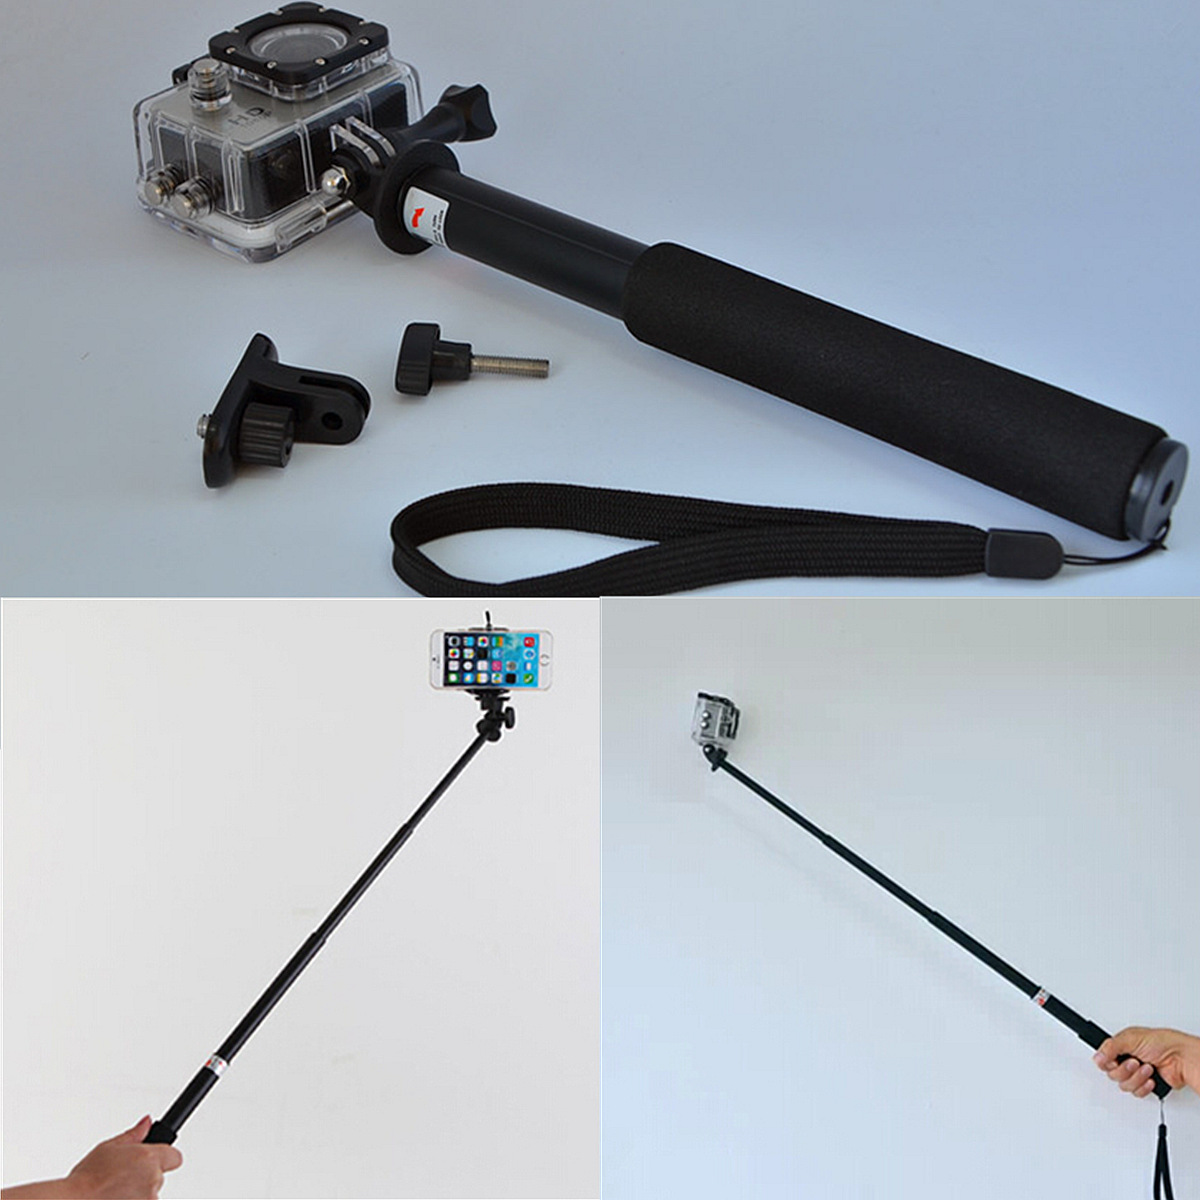 s168l selfie stick pole phone monopod for gopro hd hero sj4000 sjcam camera dslr ebay. Black Bedroom Furniture Sets. Home Design Ideas